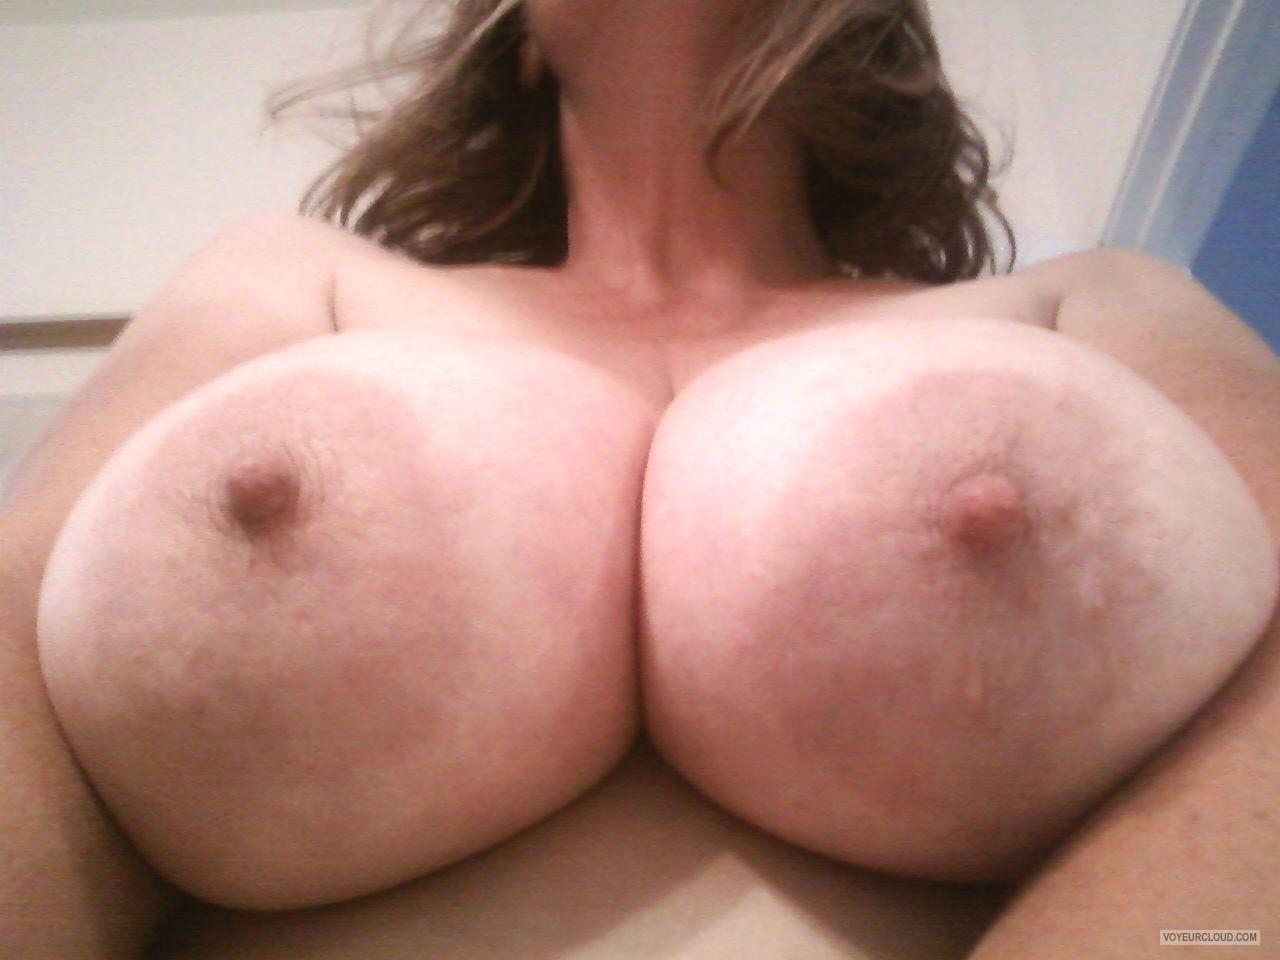 Tit Flash: My Extremely Big Tits (Selfie) - Bigboob_milf from United States